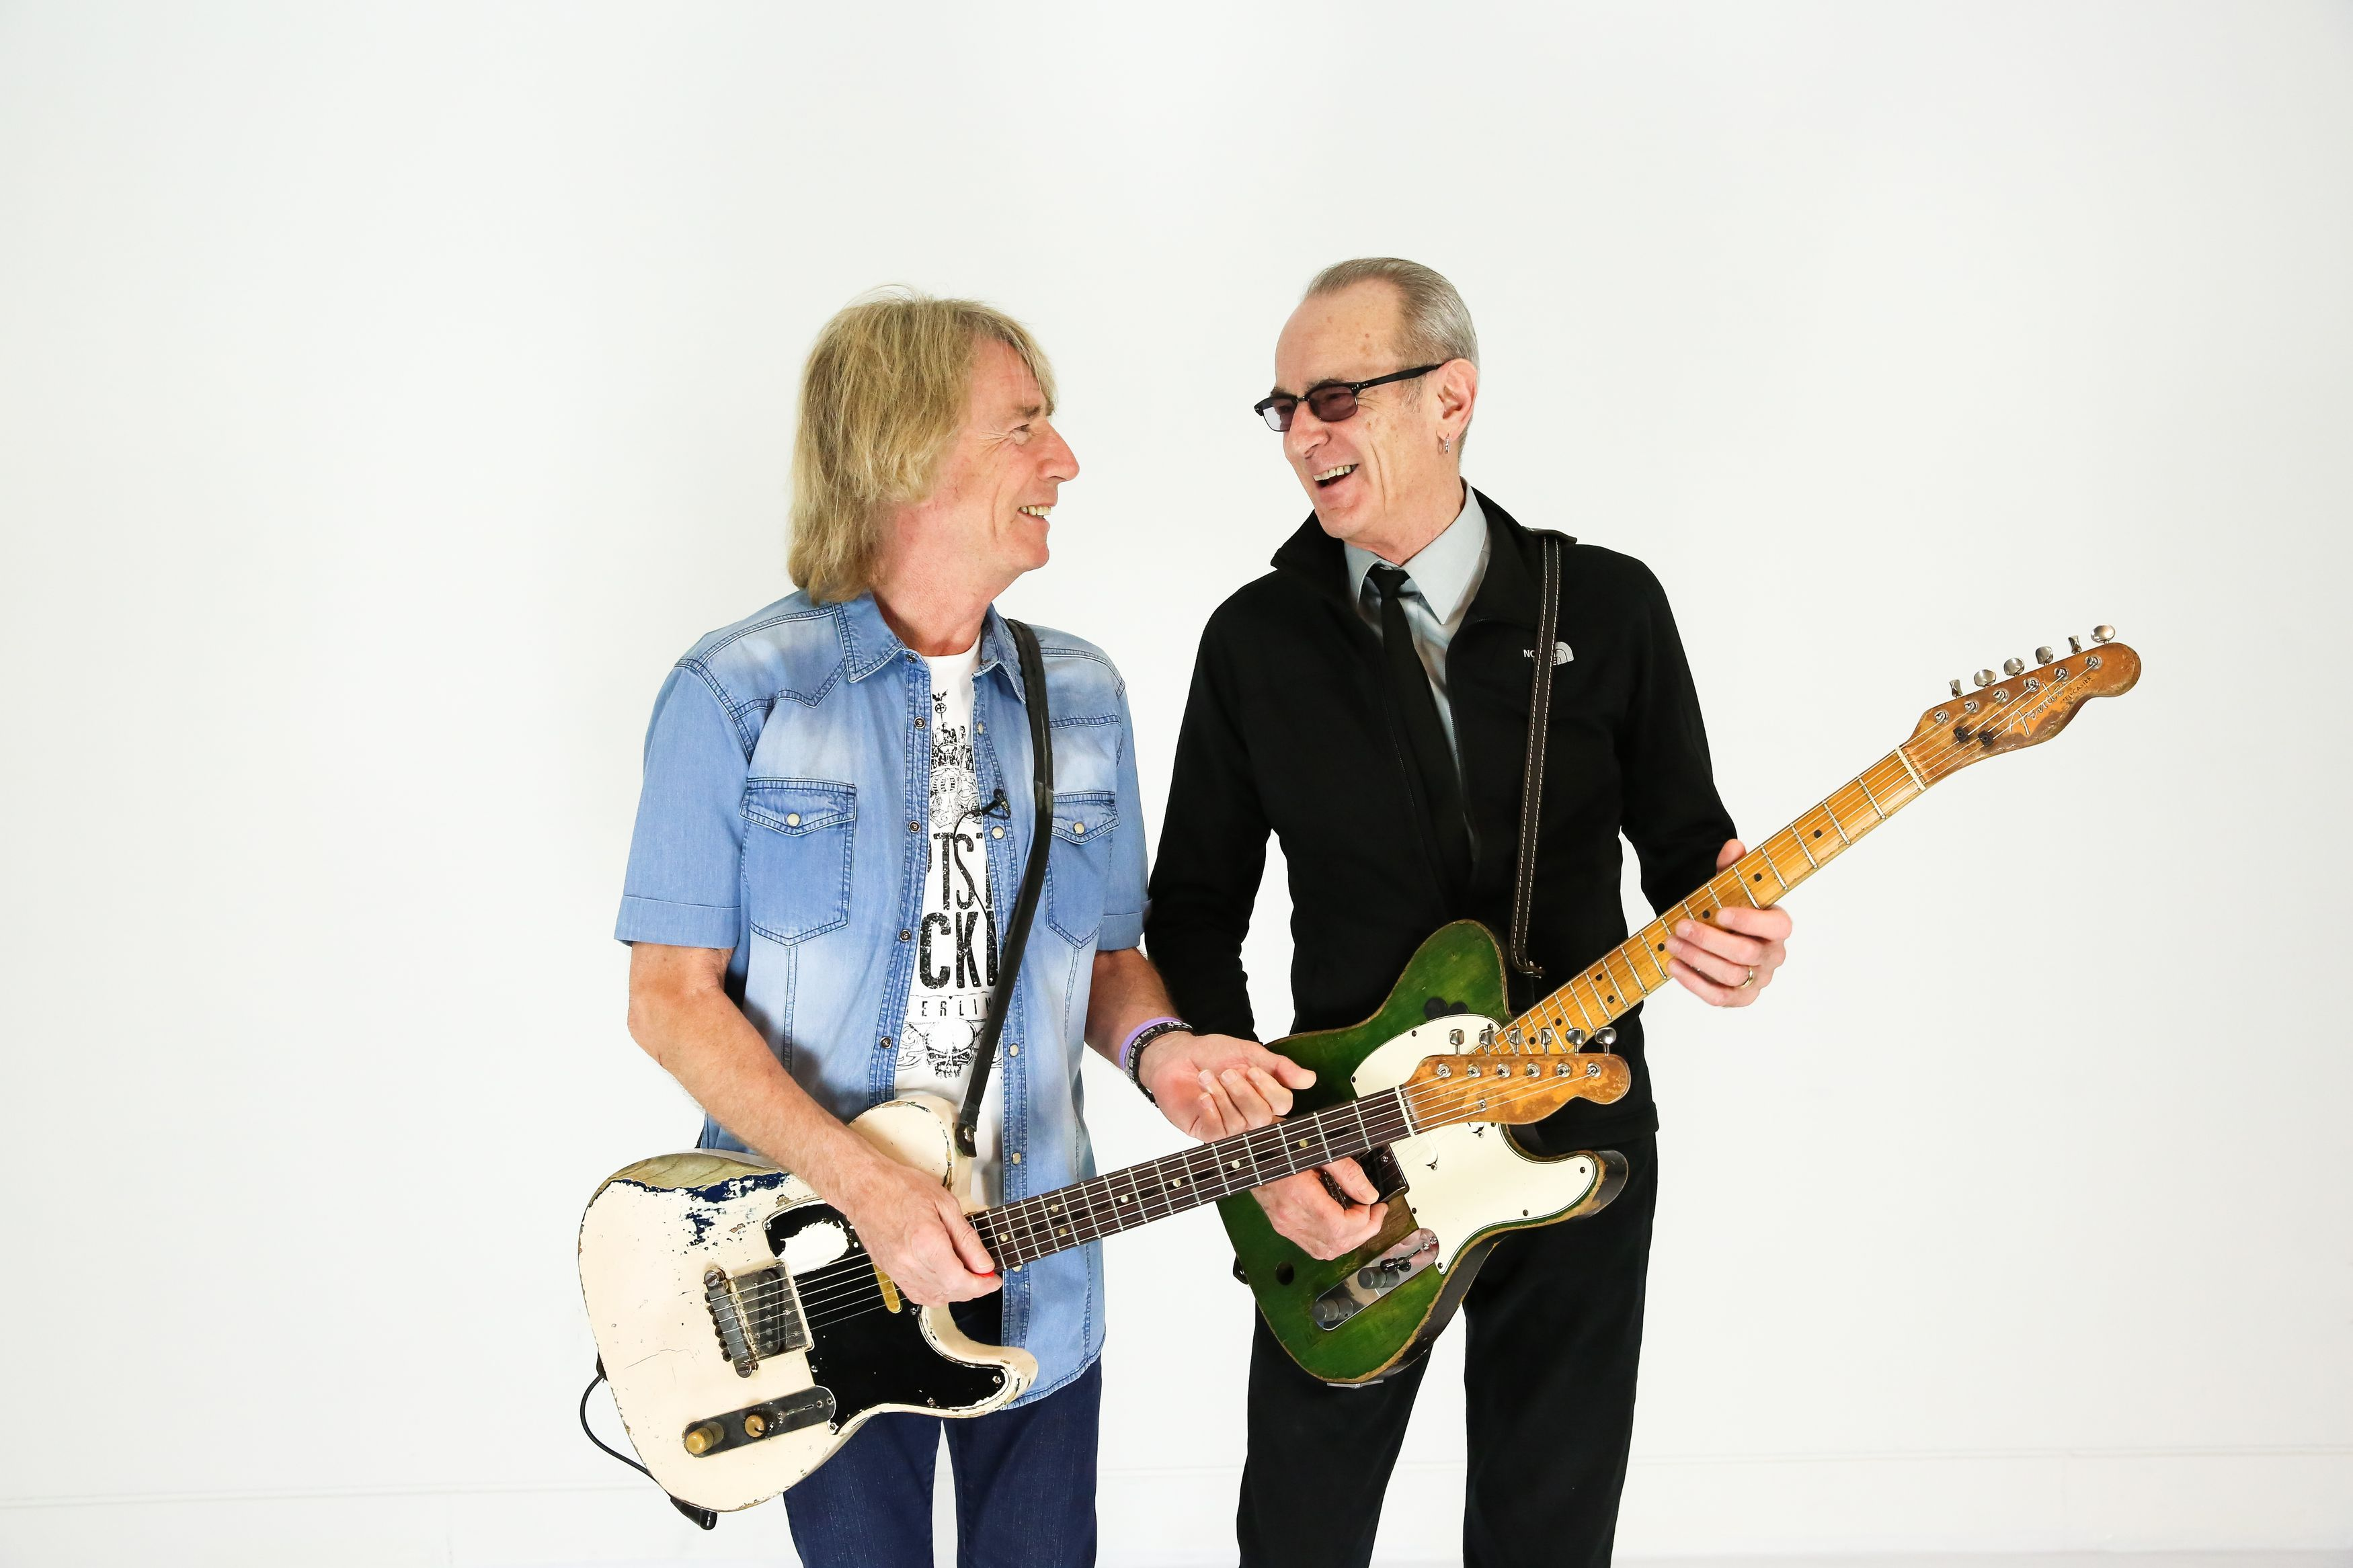 Undated handout photo of Rick Parfitt (left) and Francis Rossi of Status Quo who have said their tour at the end of this year will be the last one of its kind as they hang up their electric guitars. PRESS ASSOCIATION Photo. Issue date: Monday February 1, 2016. The band - Francis Rossi, Rick Parfitt, Andy Bown, John 'Rhino' Edwards and Leon Cave - will tour Europe in October, followed by UK performance dates in December 2016, but it will be their last tour featuring their trademark electric guitars. Tickets for the tour, which is called The Last Night Of The Electrics, will be on sale from February. See PA story SHOWBIZ StatusQuo. Photo credit should read: Christie Goodwin/PA Wire NOTE TO EDITORS: This handout photo may only be used in for editorial reporting purposes for the contemporaneous illustration of events, things or the people in the image or facts mentioned in the caption. Reuse of the picture may require further permission from the copyright holder.